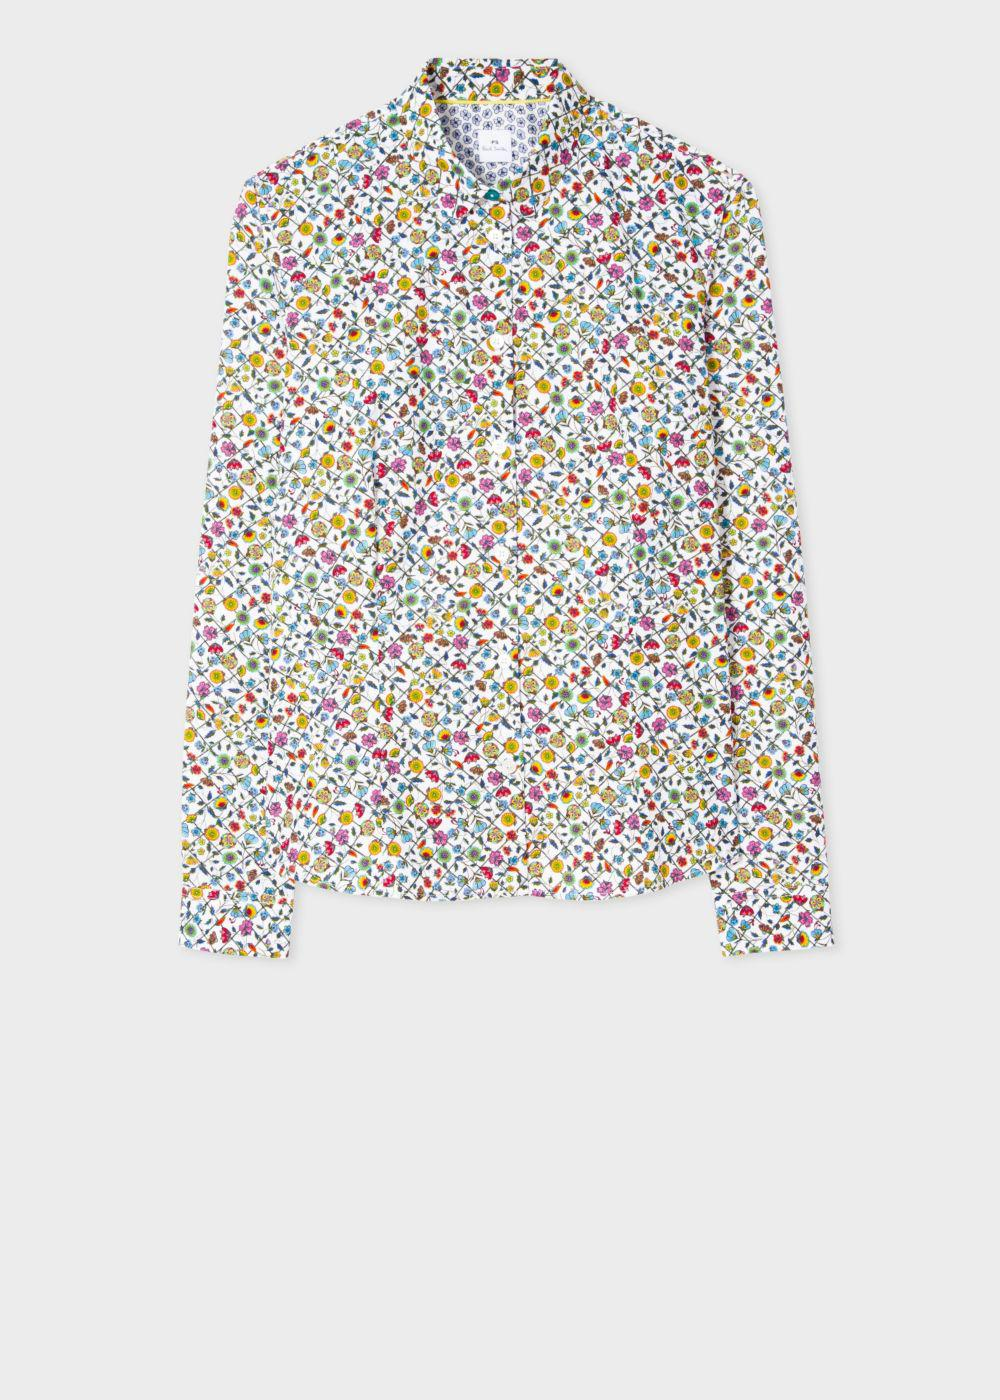 Paul smith women 39 s white 39 trellis floral 39 print shirt in for White floral shirt womens